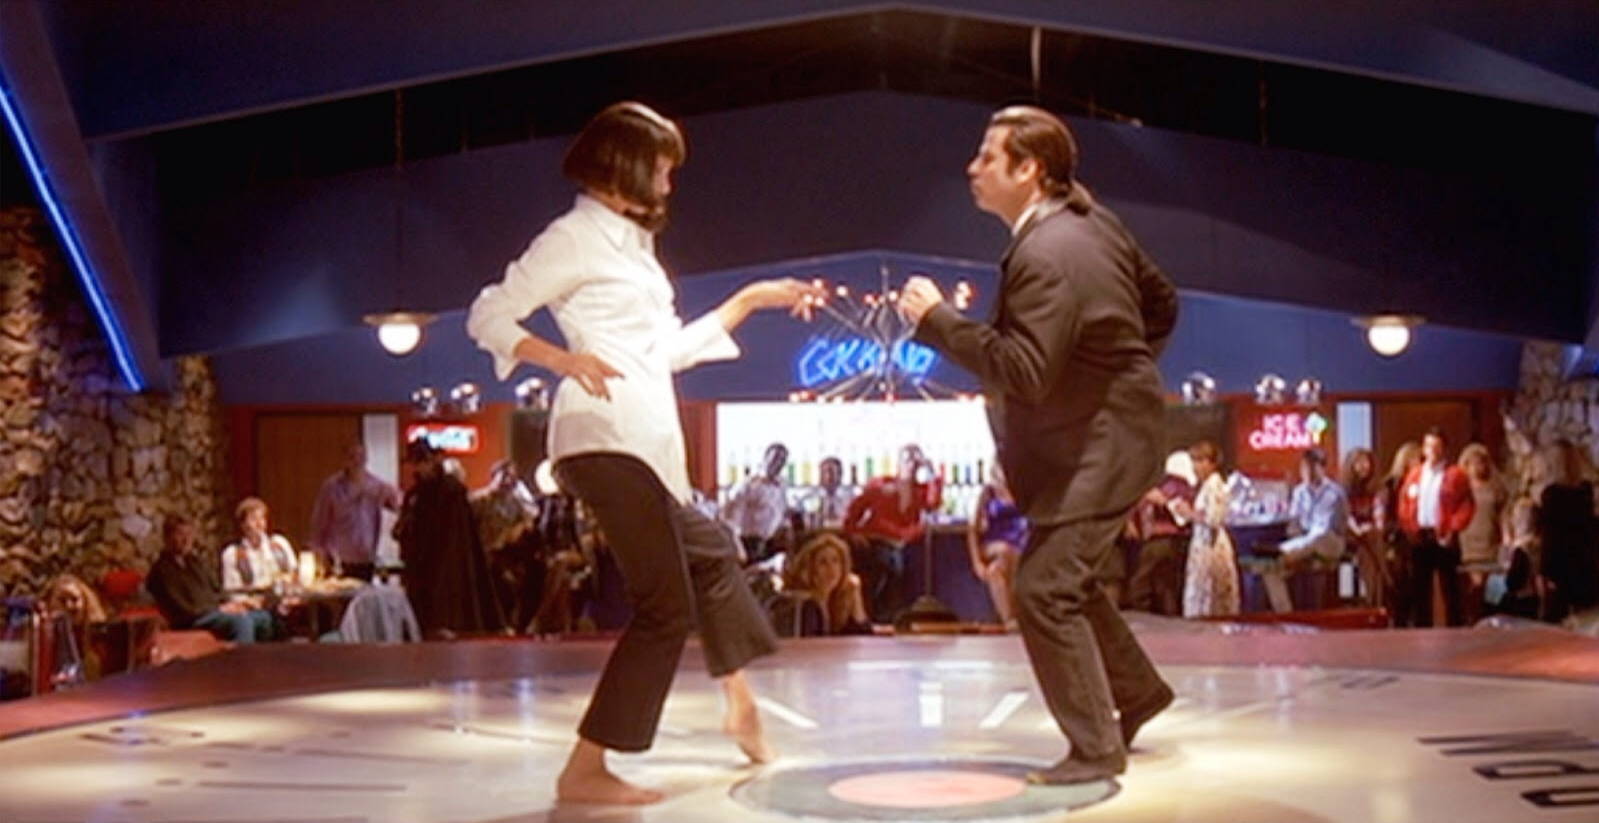 Pulp Fiction Party